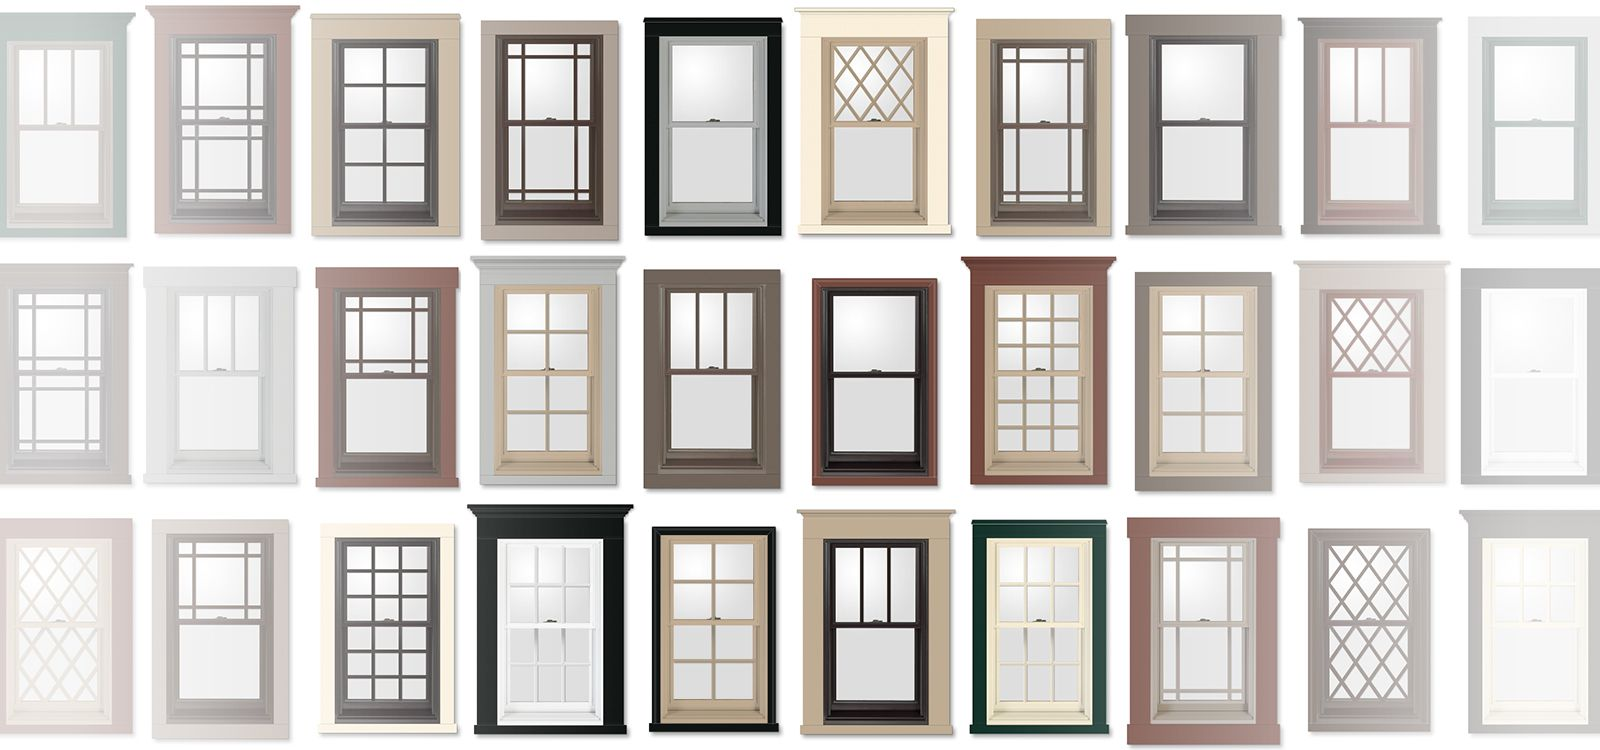 Andersen windows and patio doors 1 in quality and used for Home window design